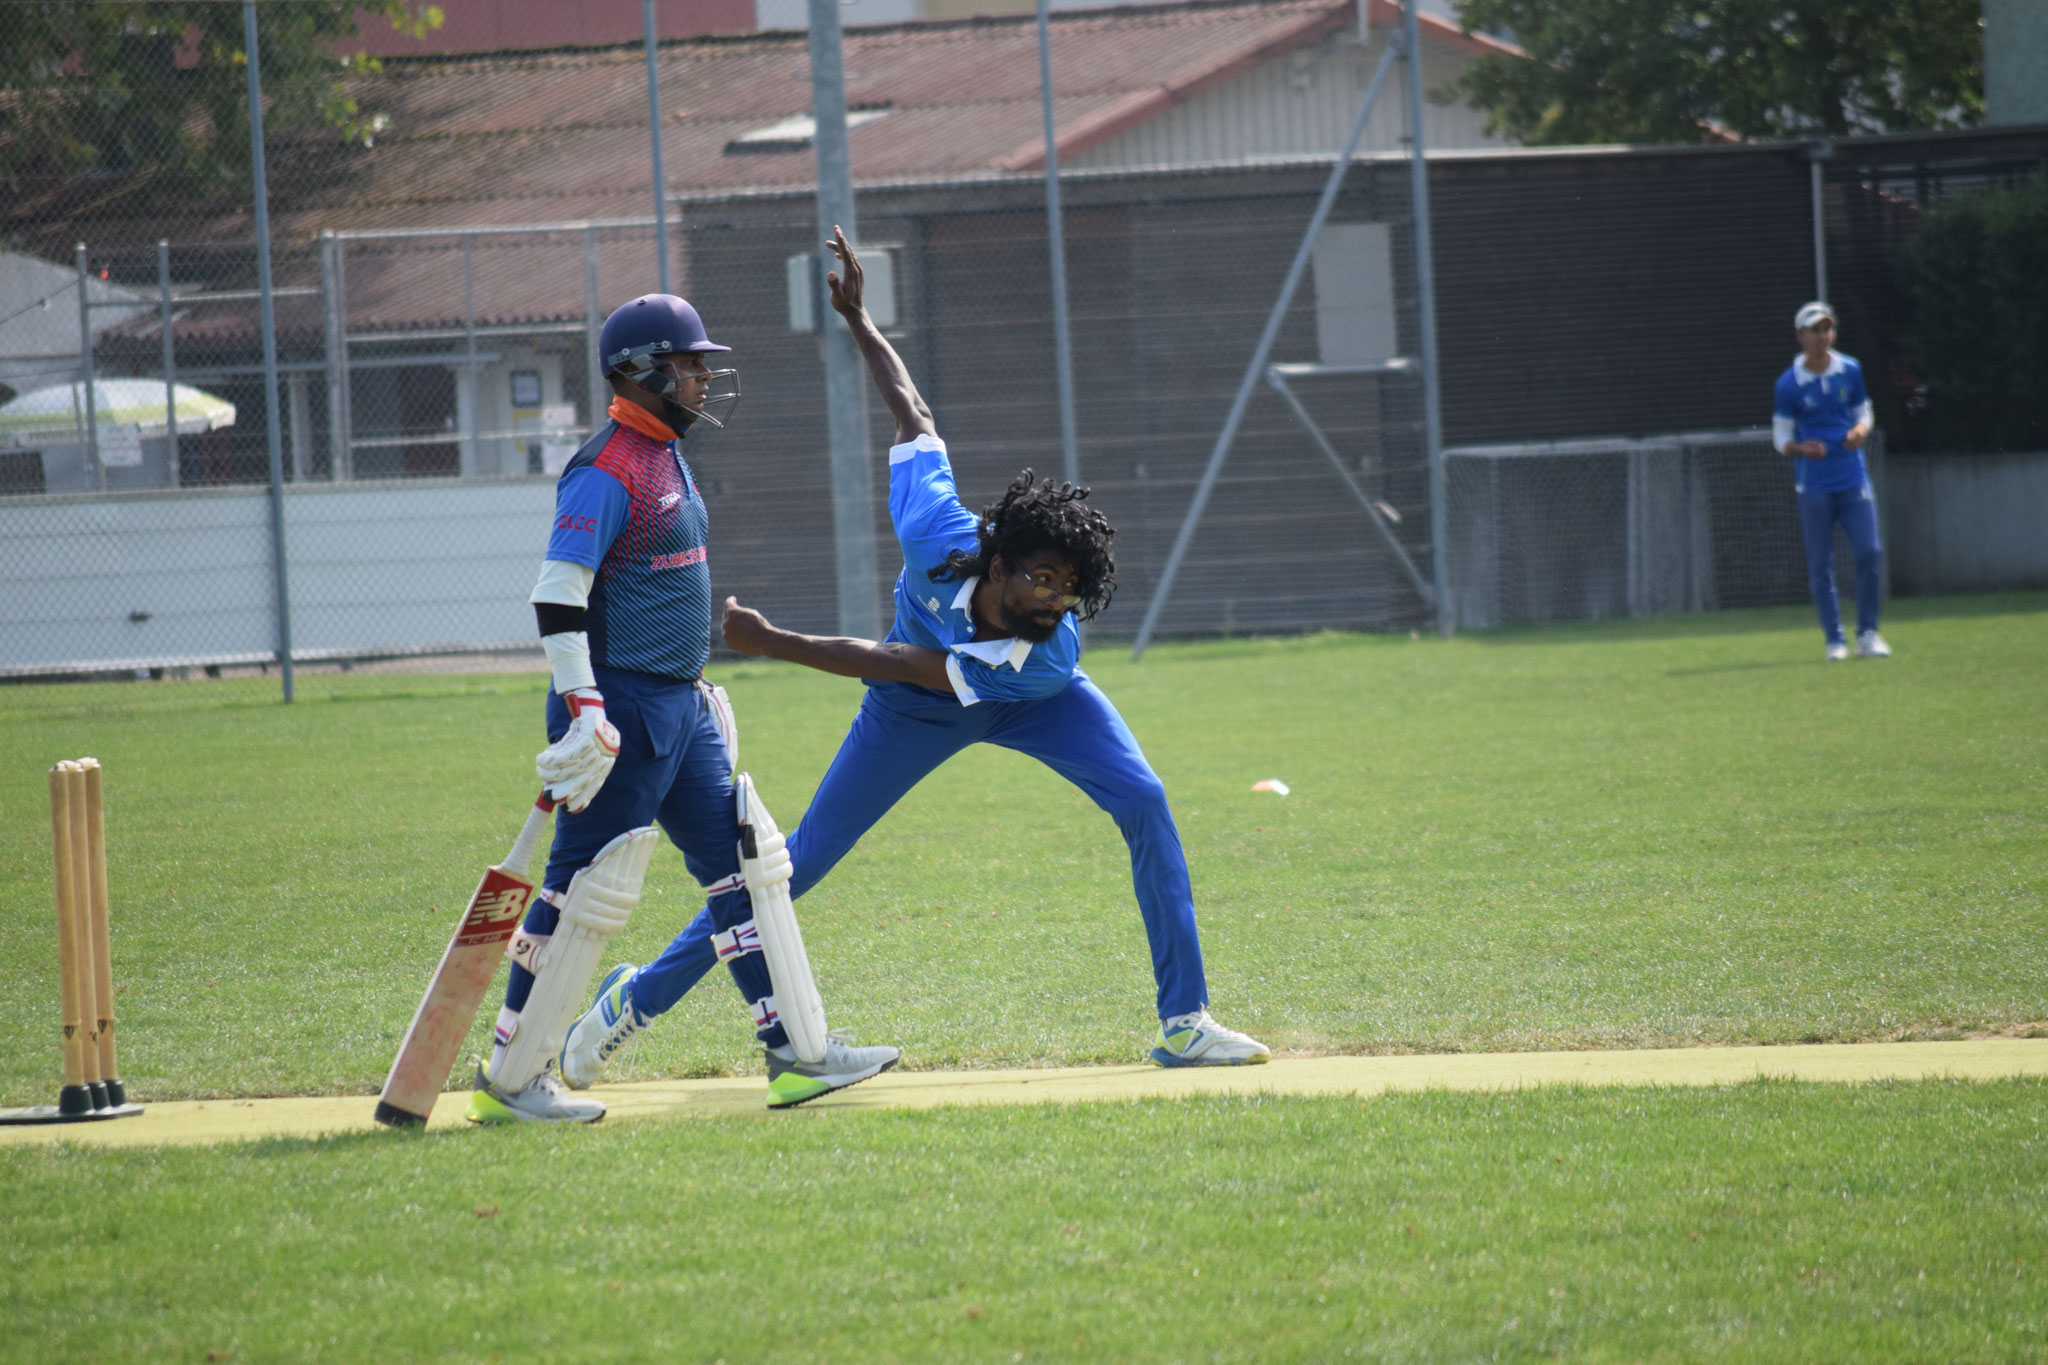 Kavi bowled a wonderfully economical 4-over spell